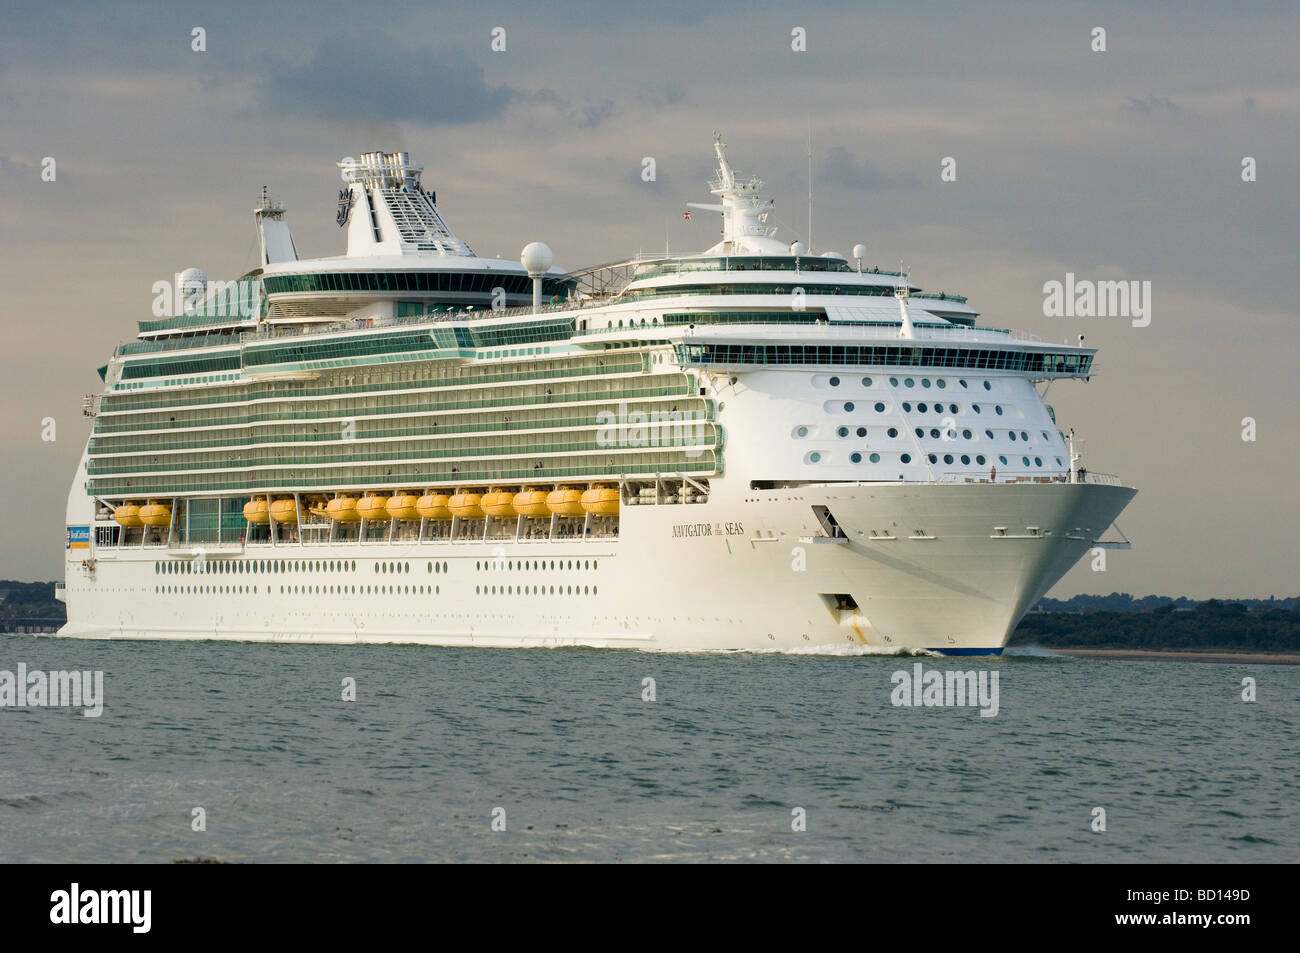 Royal Caribbean Cruise Liner  Navigator of the Seas, Southampton Water, Hampshire, England, UK Stock Photo